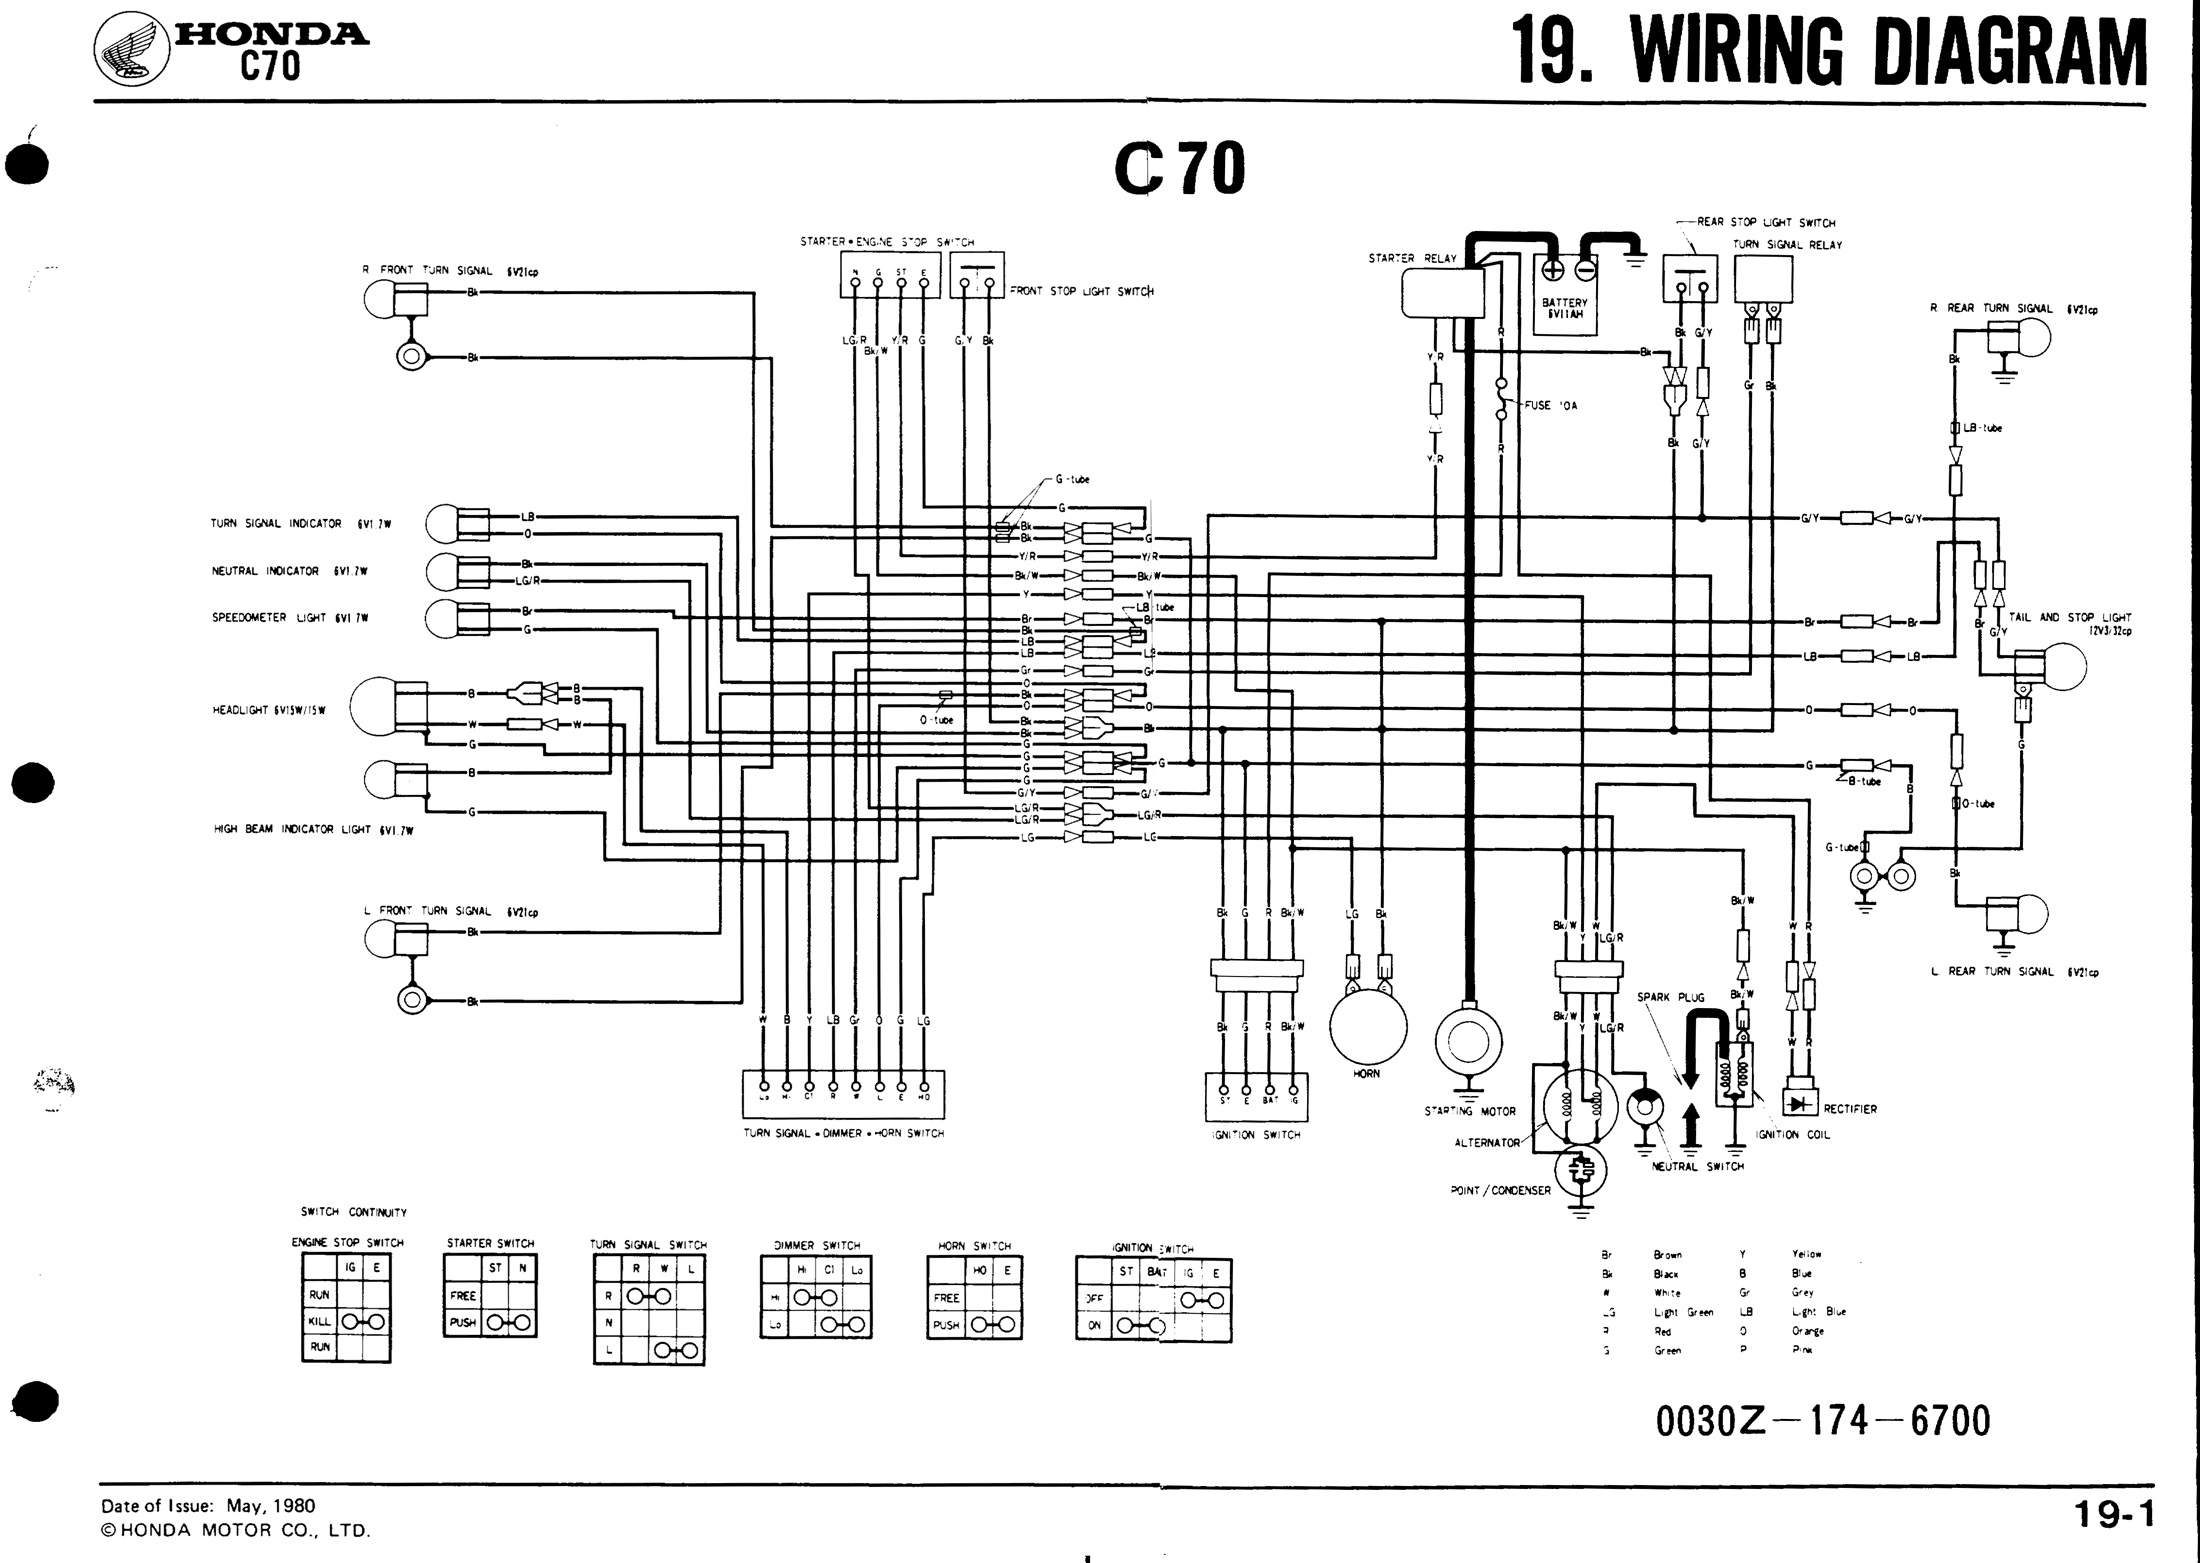 wiring_diagram_s diagram for honda c70 wiring wiring diagrams instruction c70 wiring diagram at bakdesigns.co